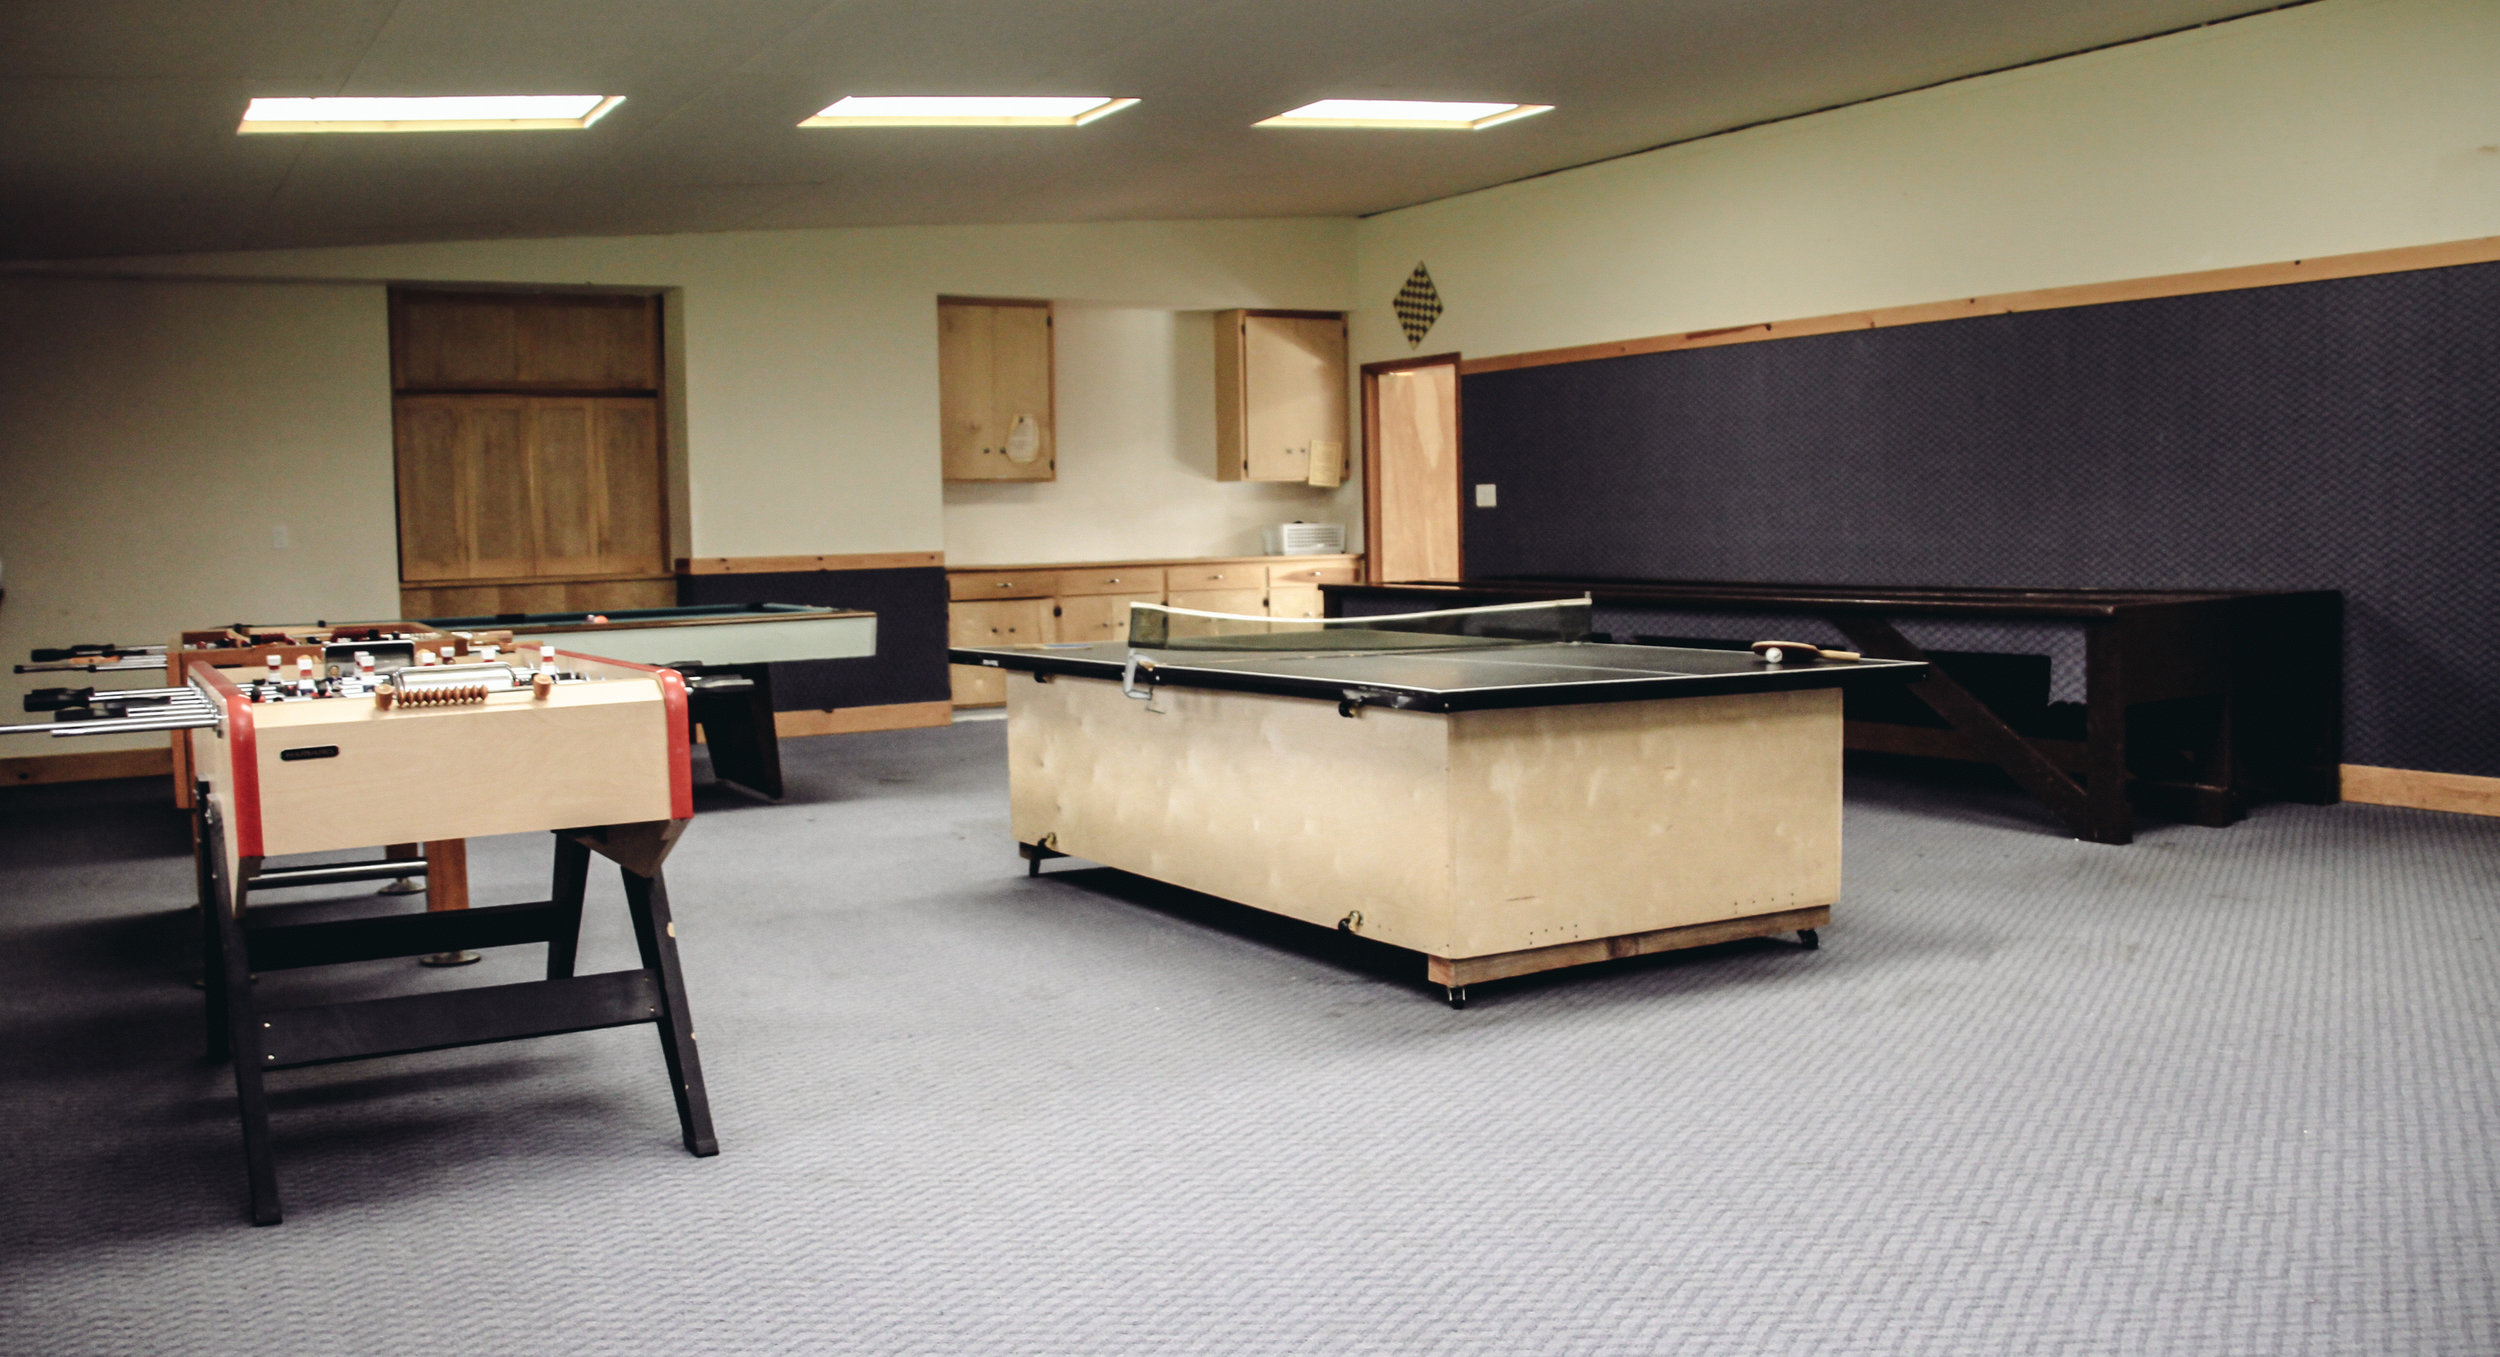 Our Game Room with Ping Pong, Carpet Ball, Foosball and Pool!